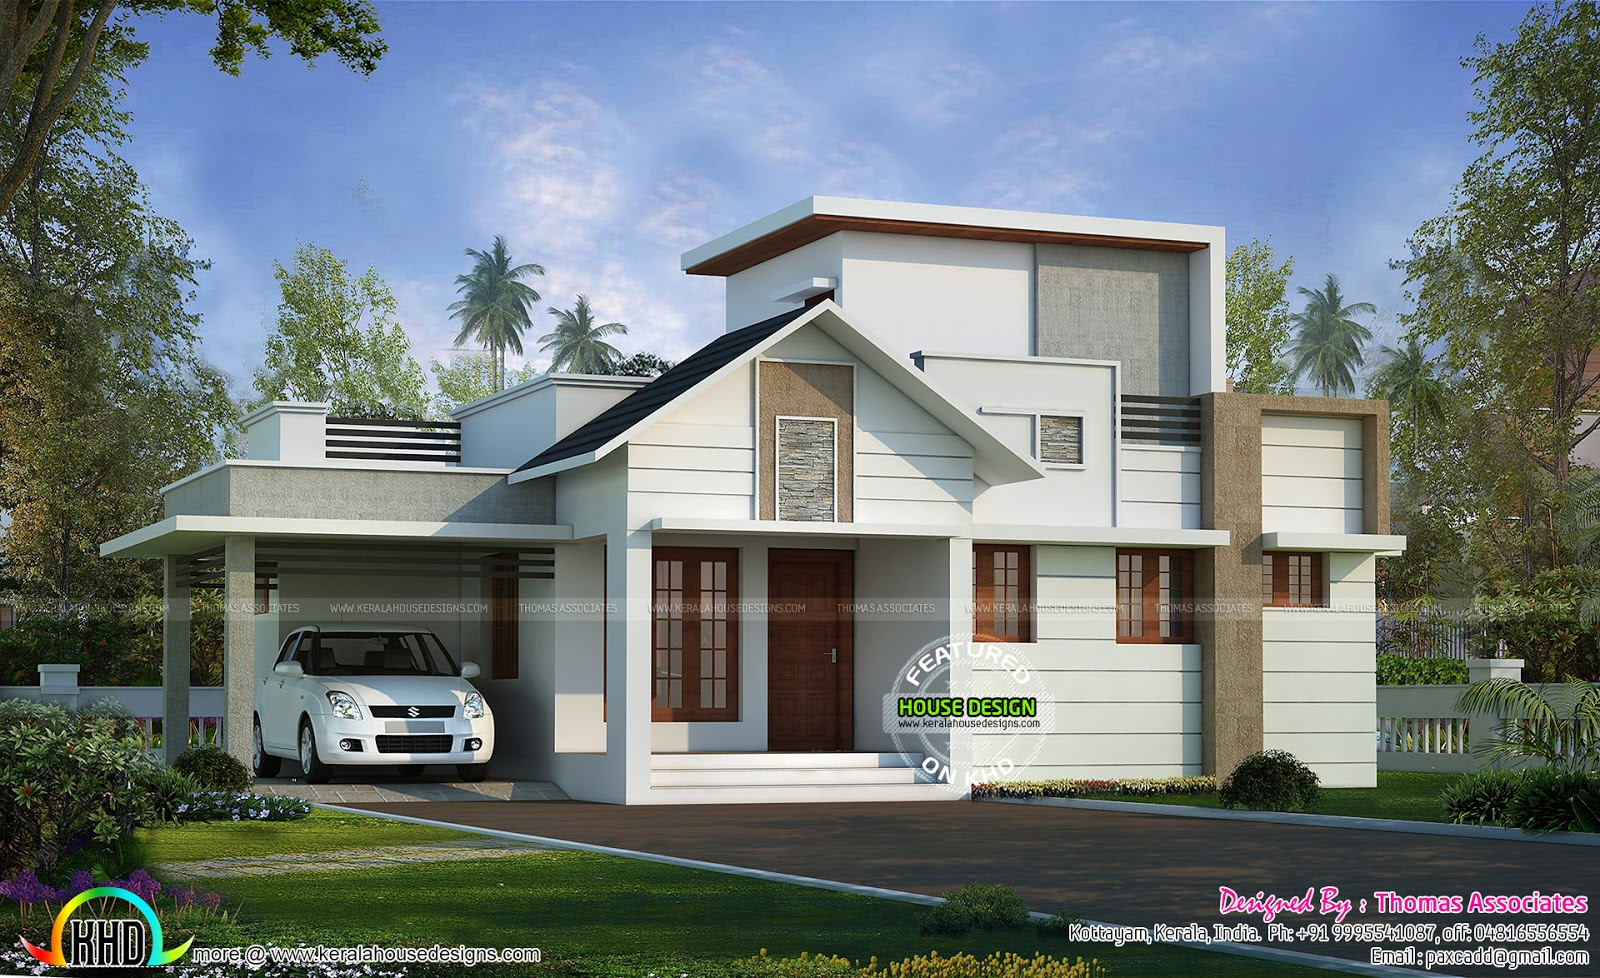 24 lakhs cost estimated one floor house kerala home for One floor house images